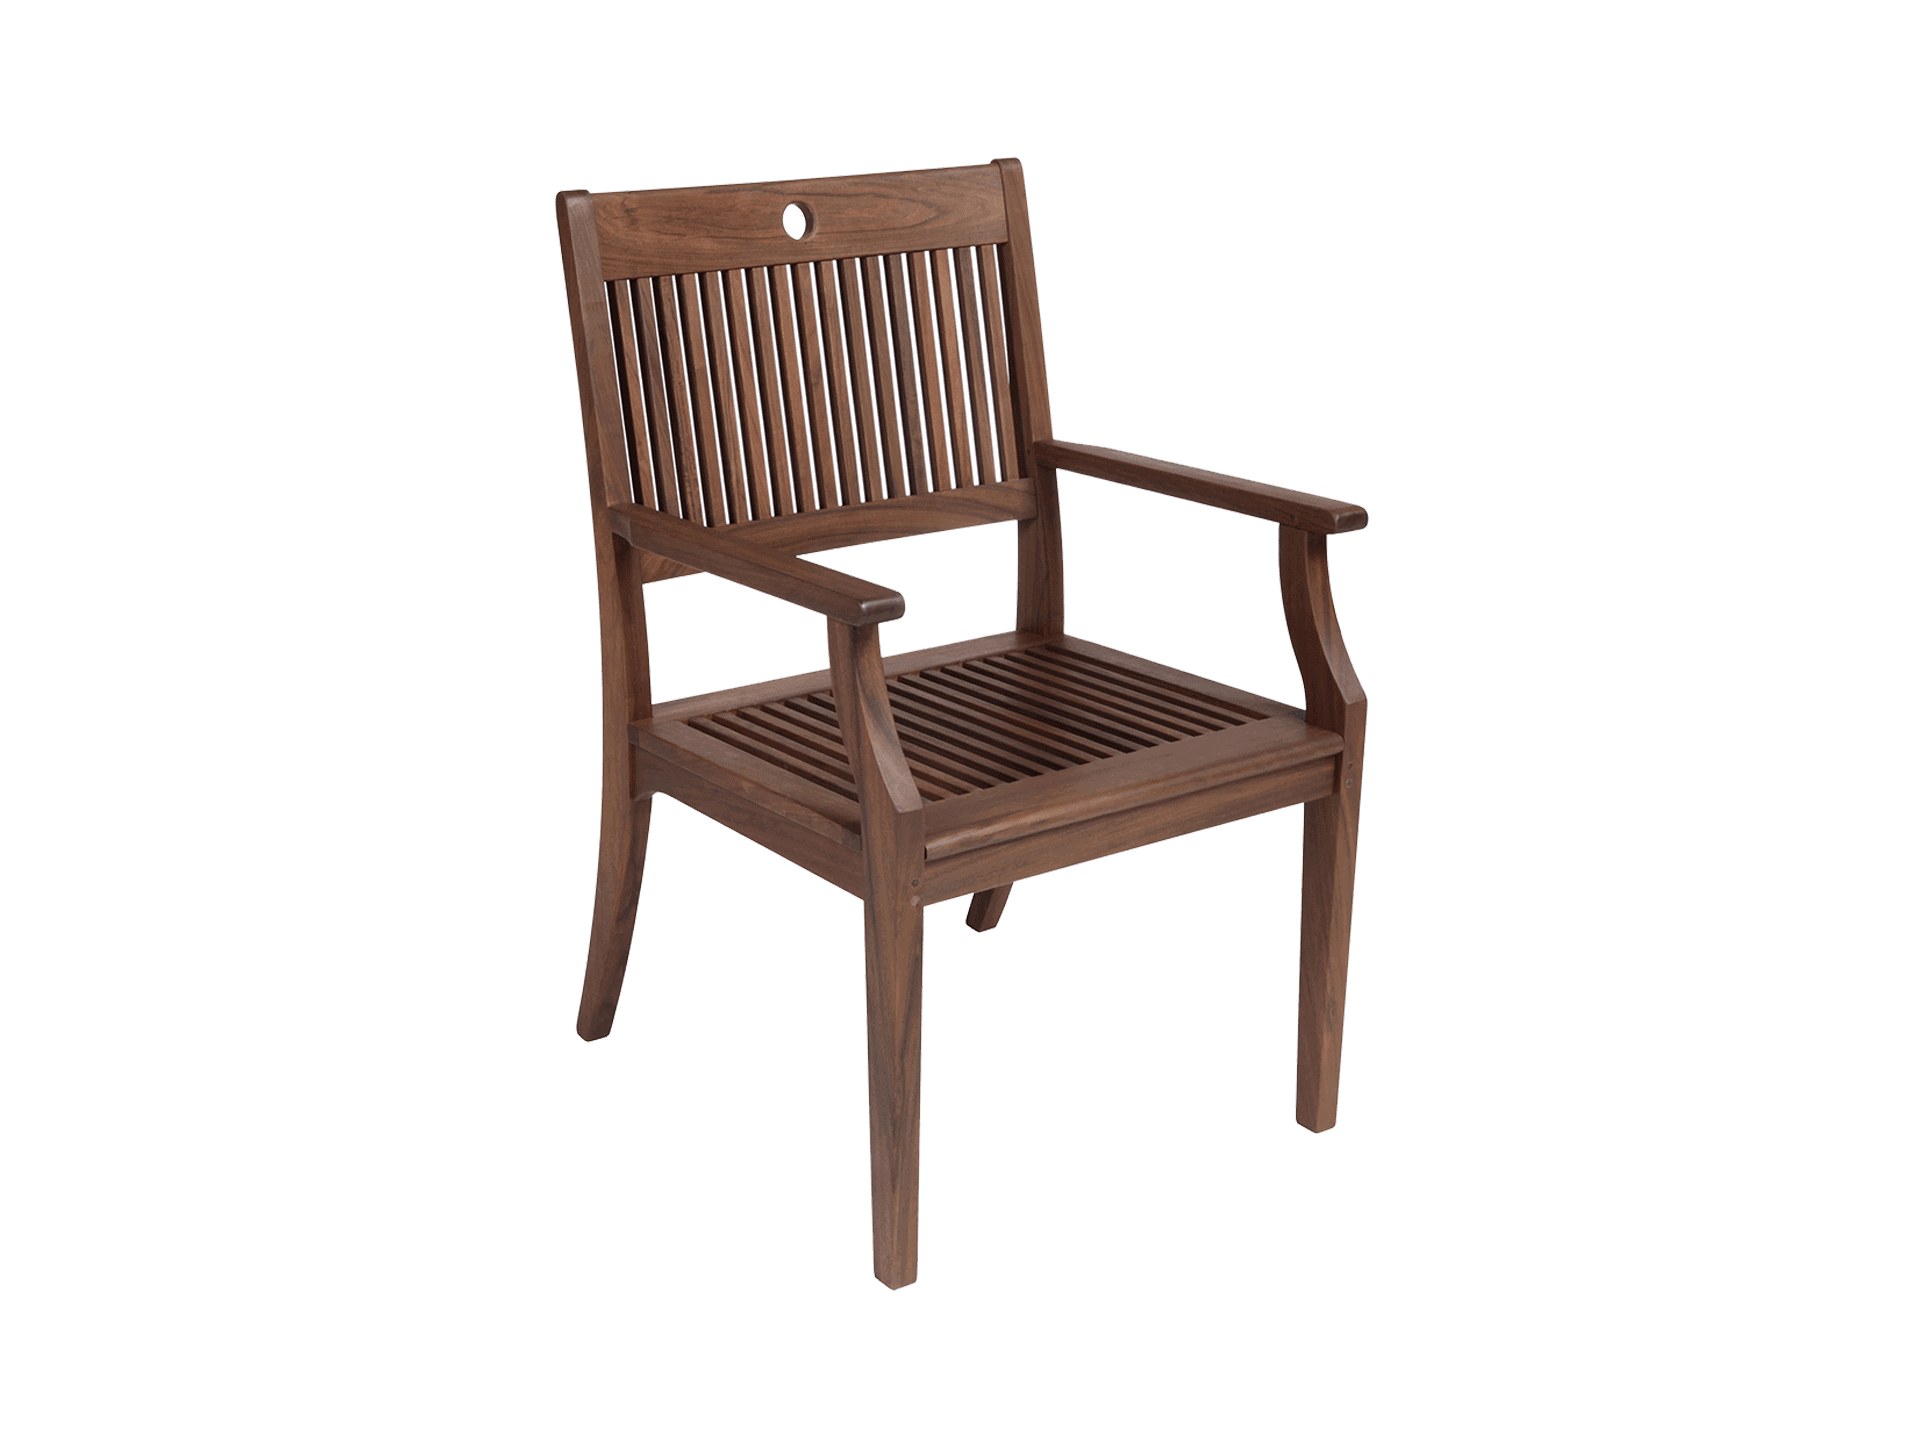 ipe adirondack chairs best office chair after neck surgery opal dining with arms jensen leisure furniture